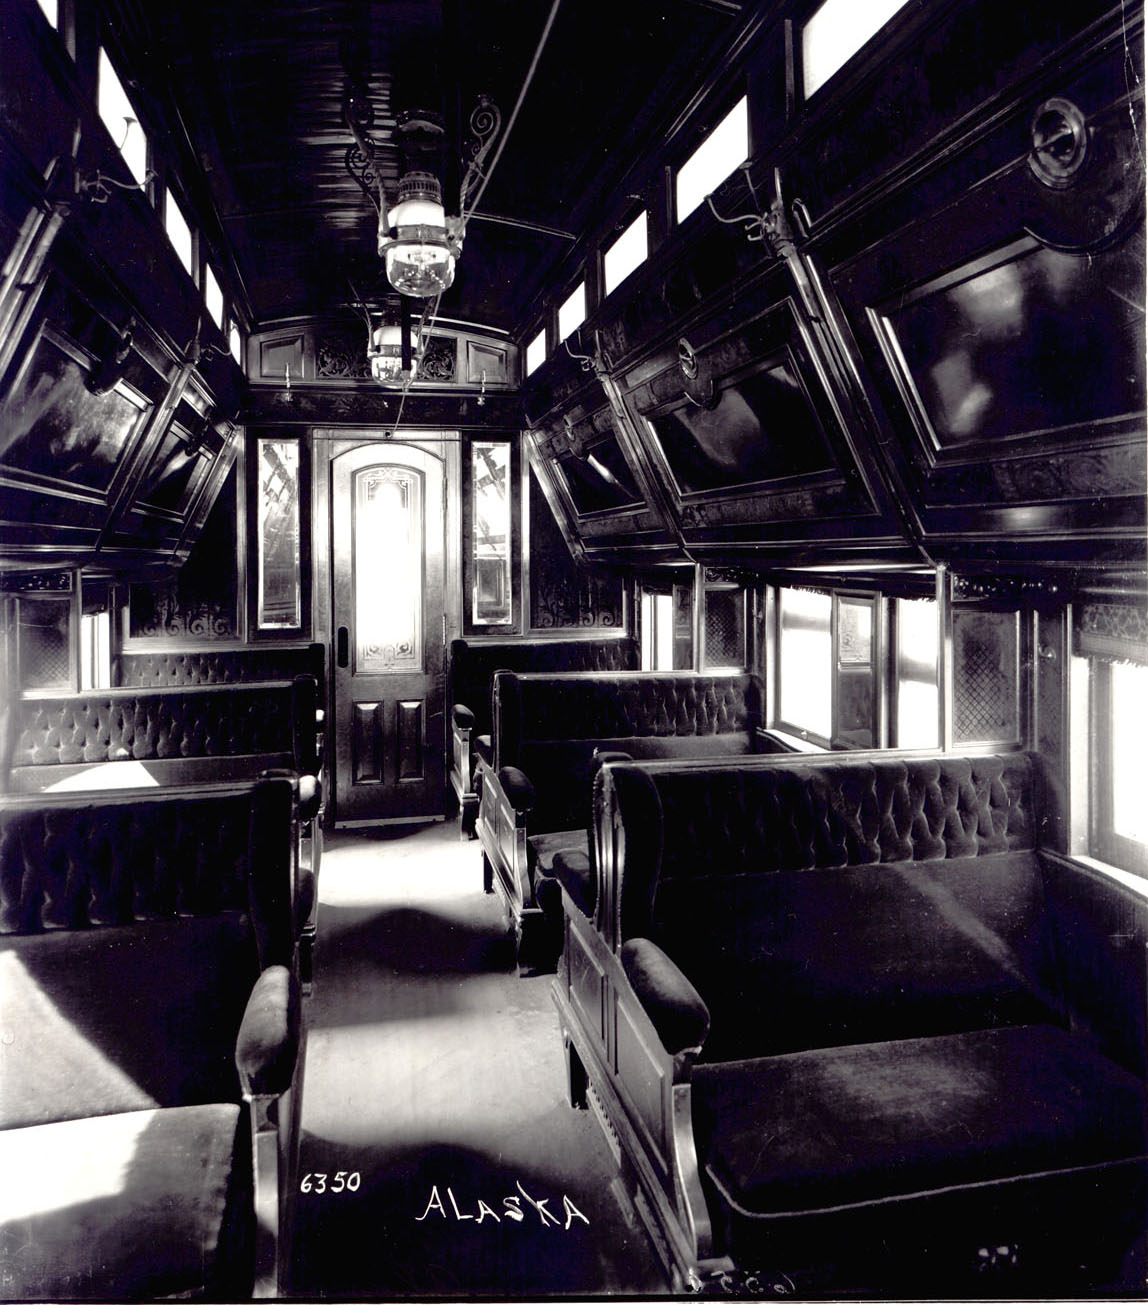 Pullman Train Cars, The Epitome Of Luxury Palace Cars